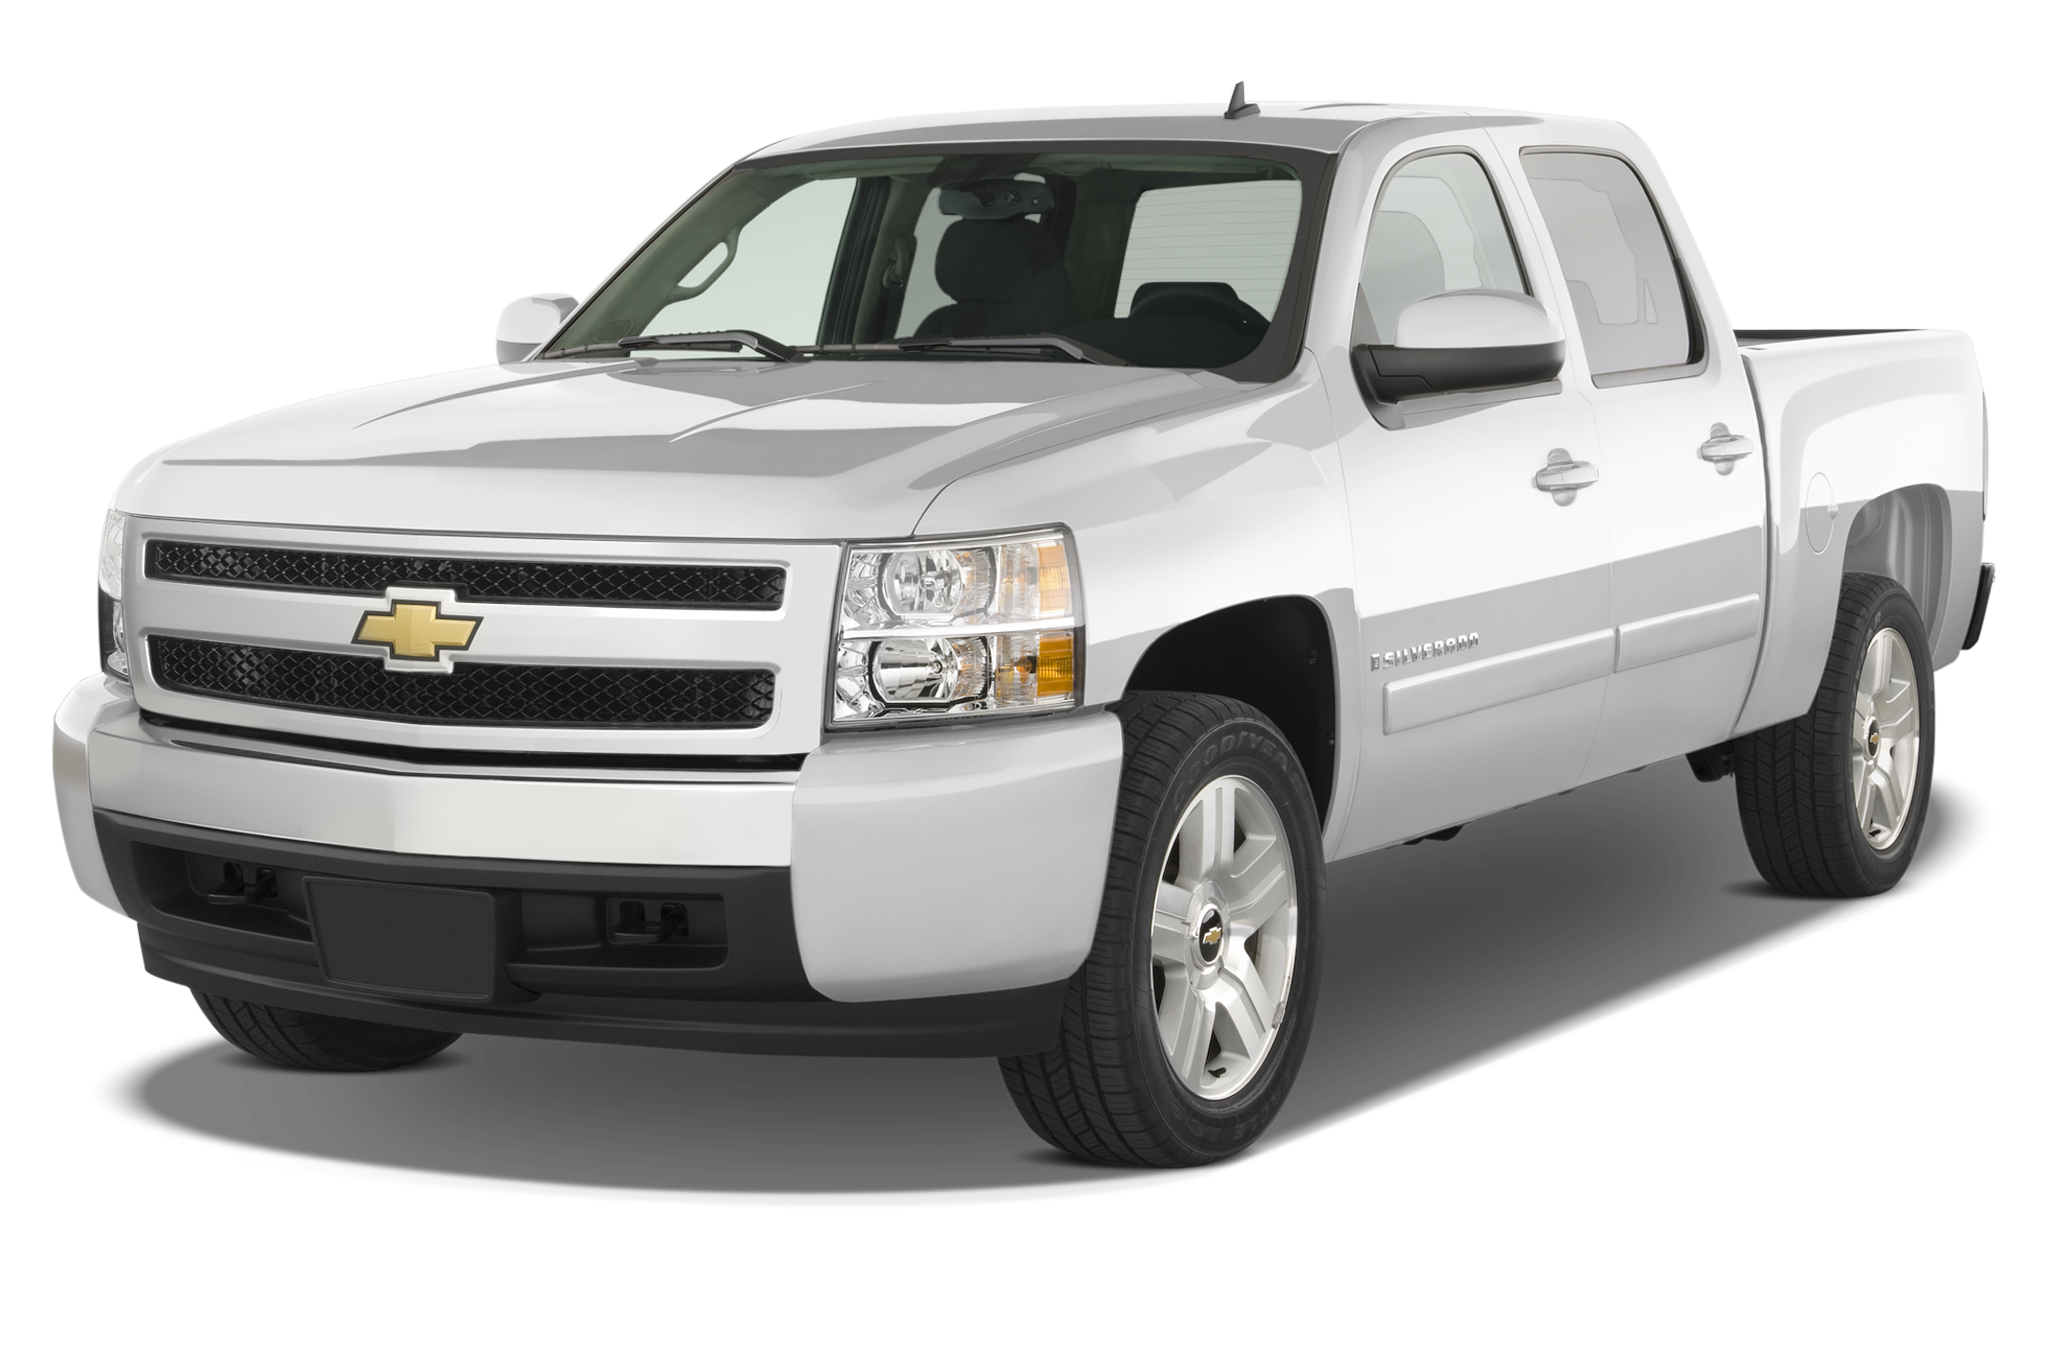 2011 chevrolet silverado 2500 4wd ltz crew cab editor 39 s notebook automobile magazine. Black Bedroom Furniture Sets. Home Design Ideas